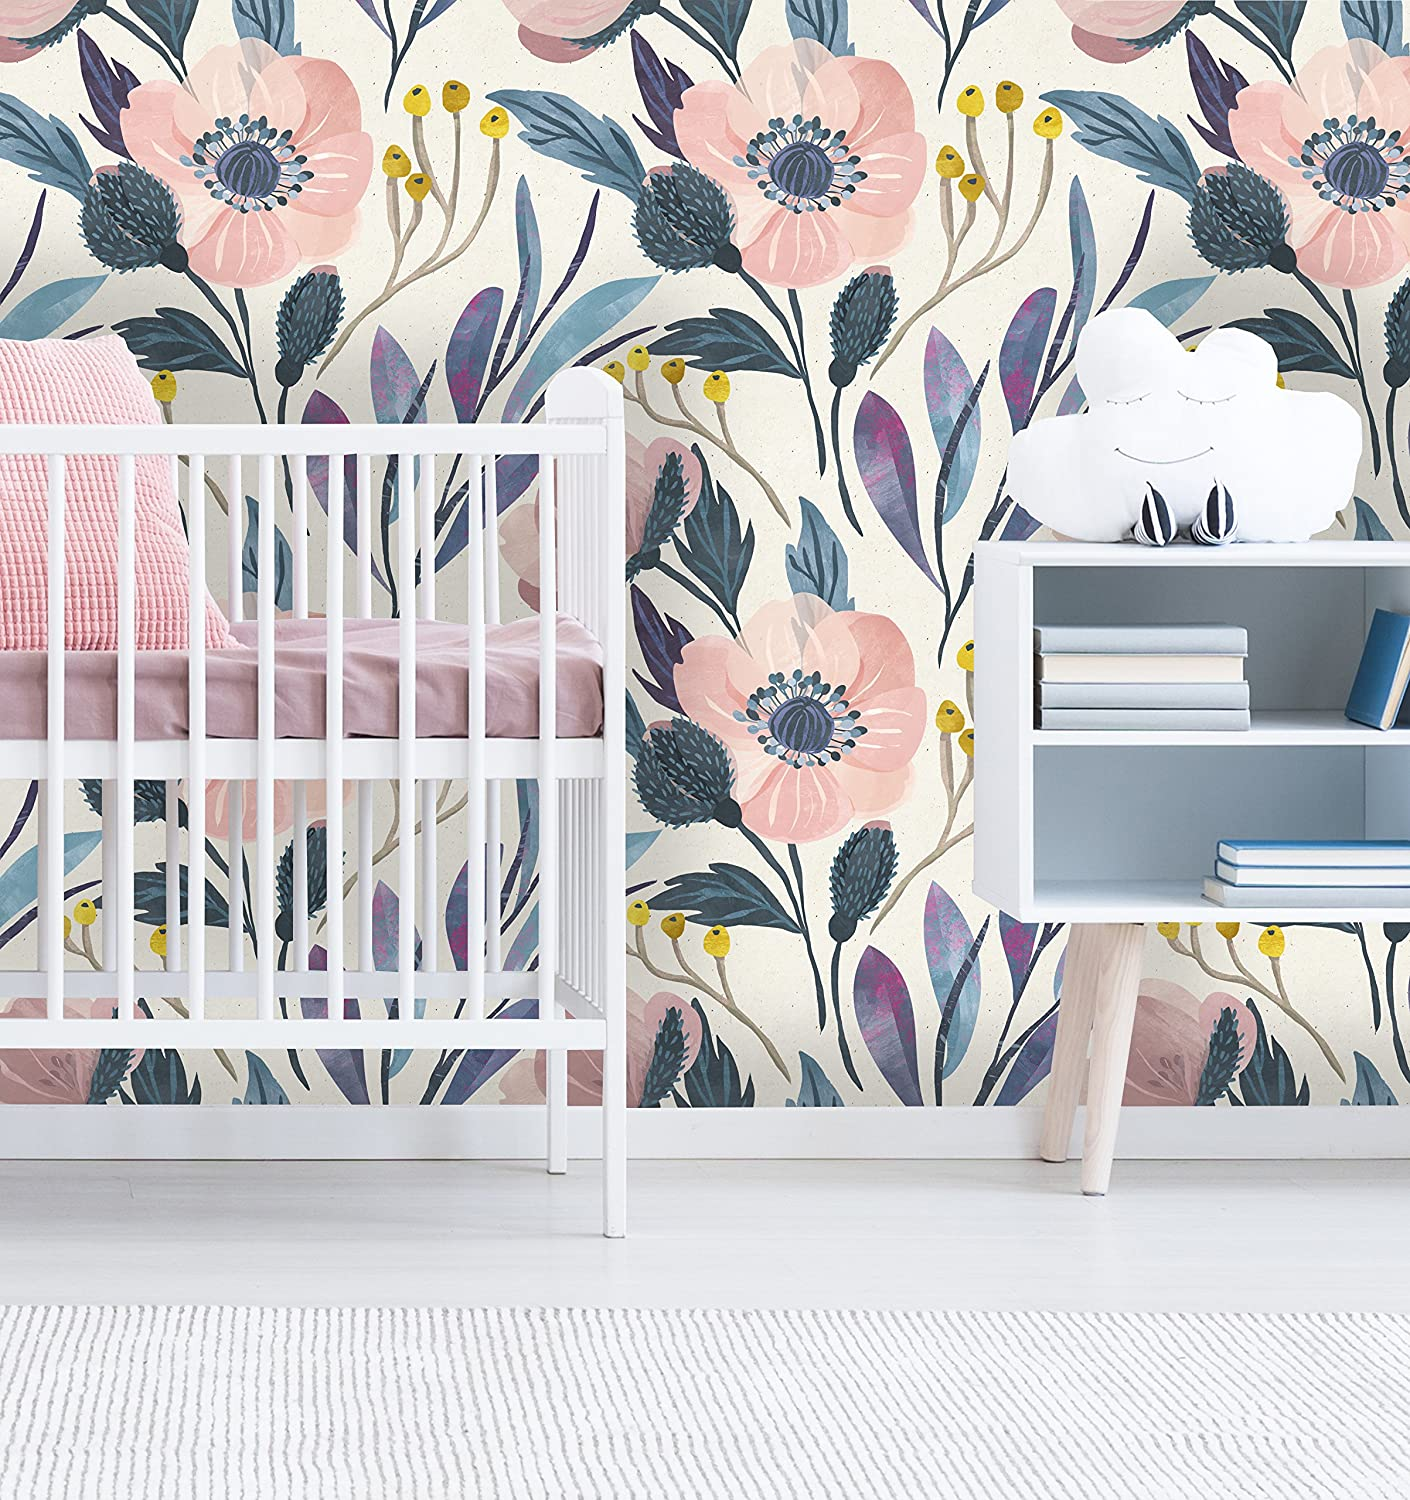 Removable Wallpaper Mural Peel Stick Nursery Wallpaper Self